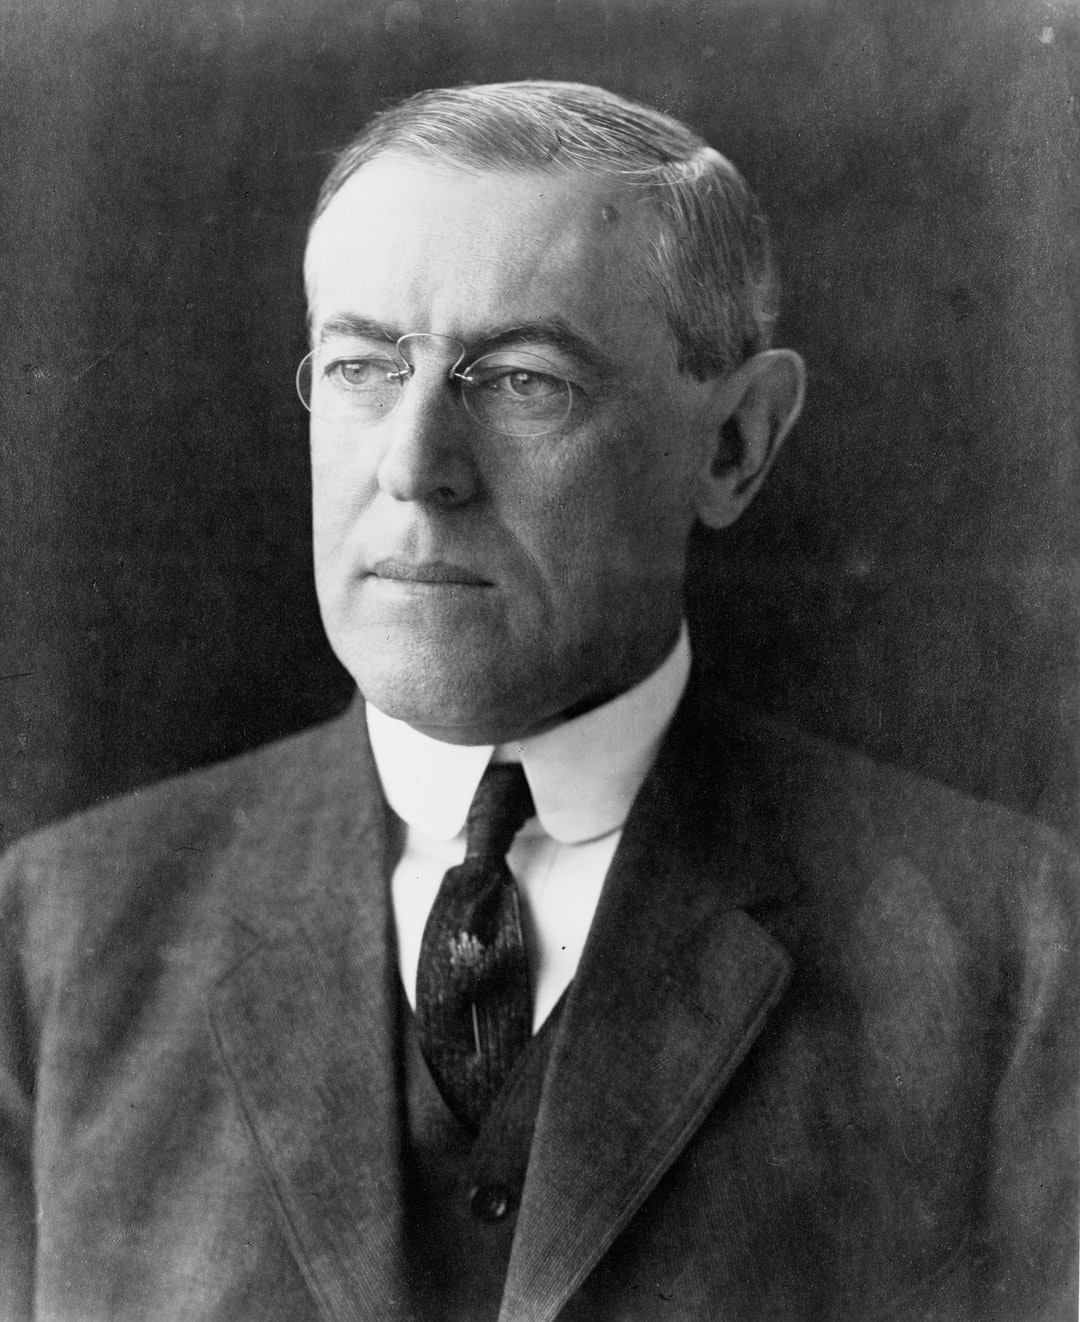 [Woodrow Wilson, head-and-shoulders portrait, facing left]. Photograph by Pach Brothers, c1912. From the Presidential File Collection. Library of Congress Prints & Photographs Division.    https://www.loc.gov/item/96522632/